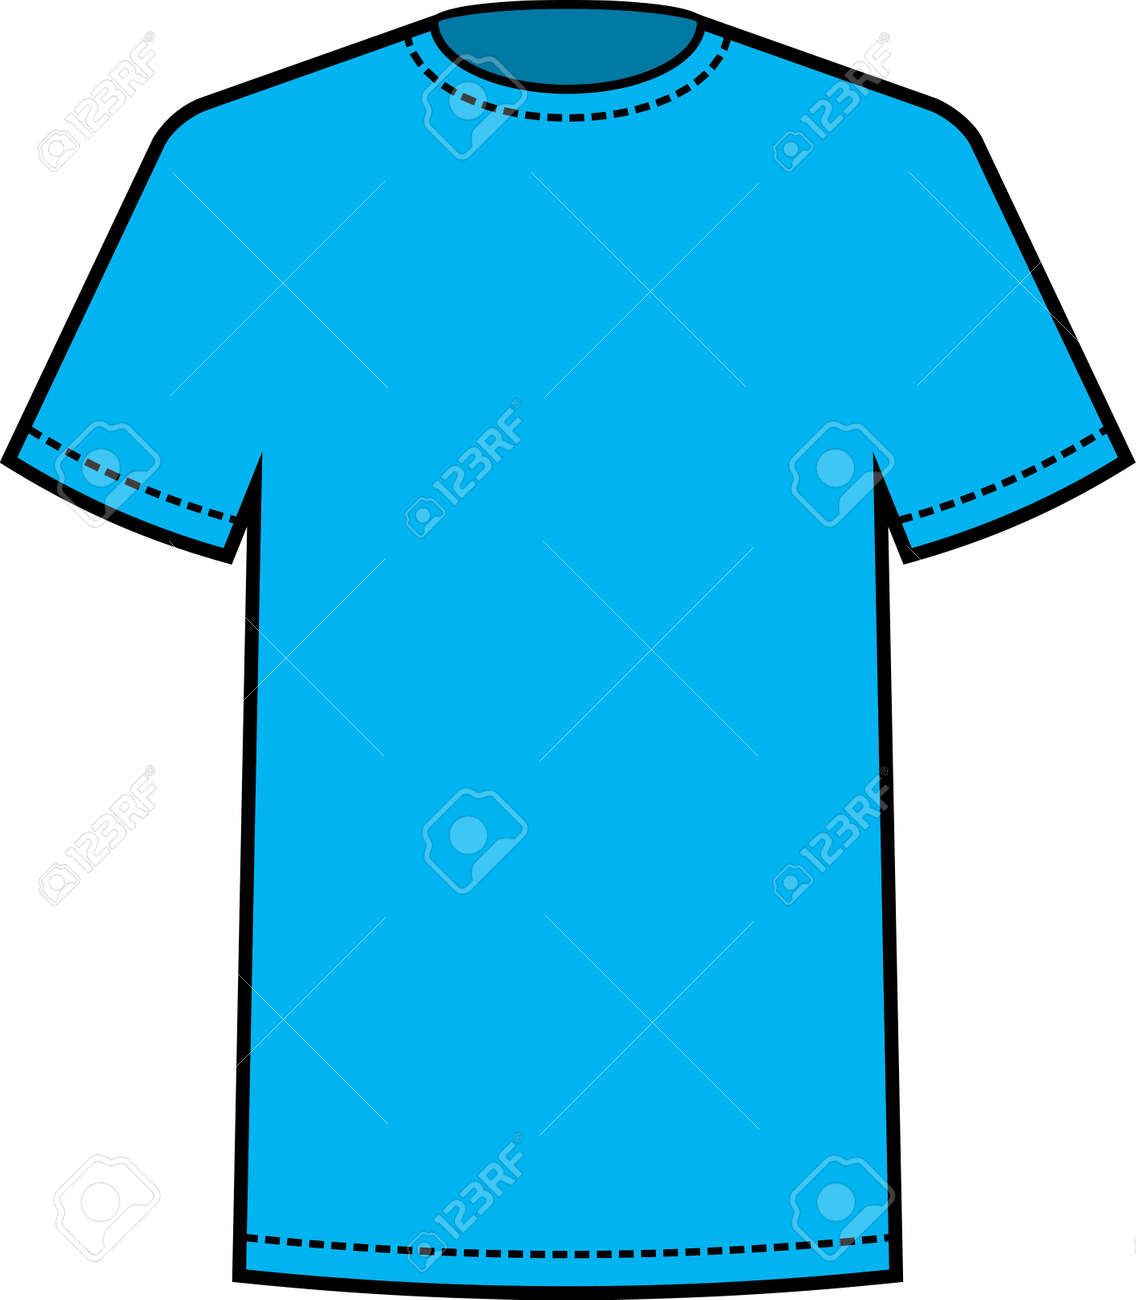 Blank Blue T-shirt Template Vector Royalty Free Cliparts, Vectors ...